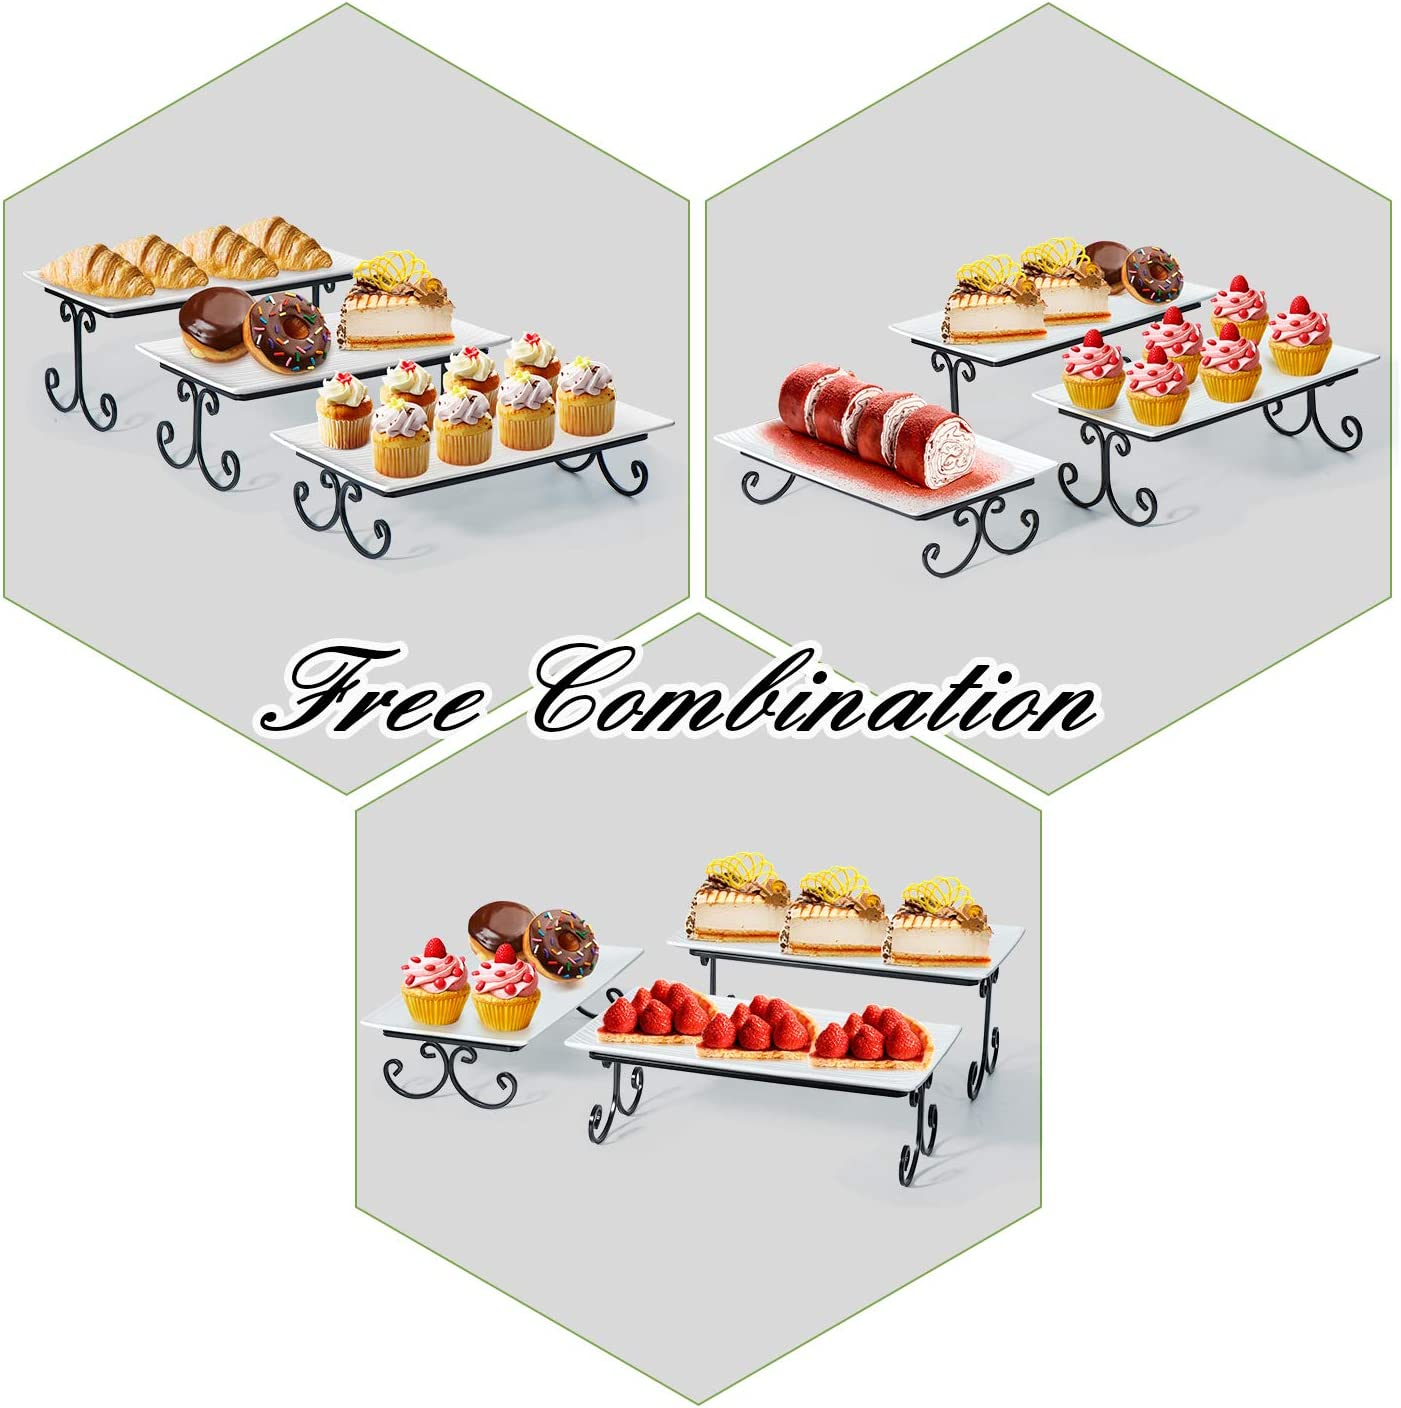 3 Tier Serving Platter and Tray Free Combination Cake Cupcake Stand for Food Dessert Display SRIWATANA Tiered Serving Stand